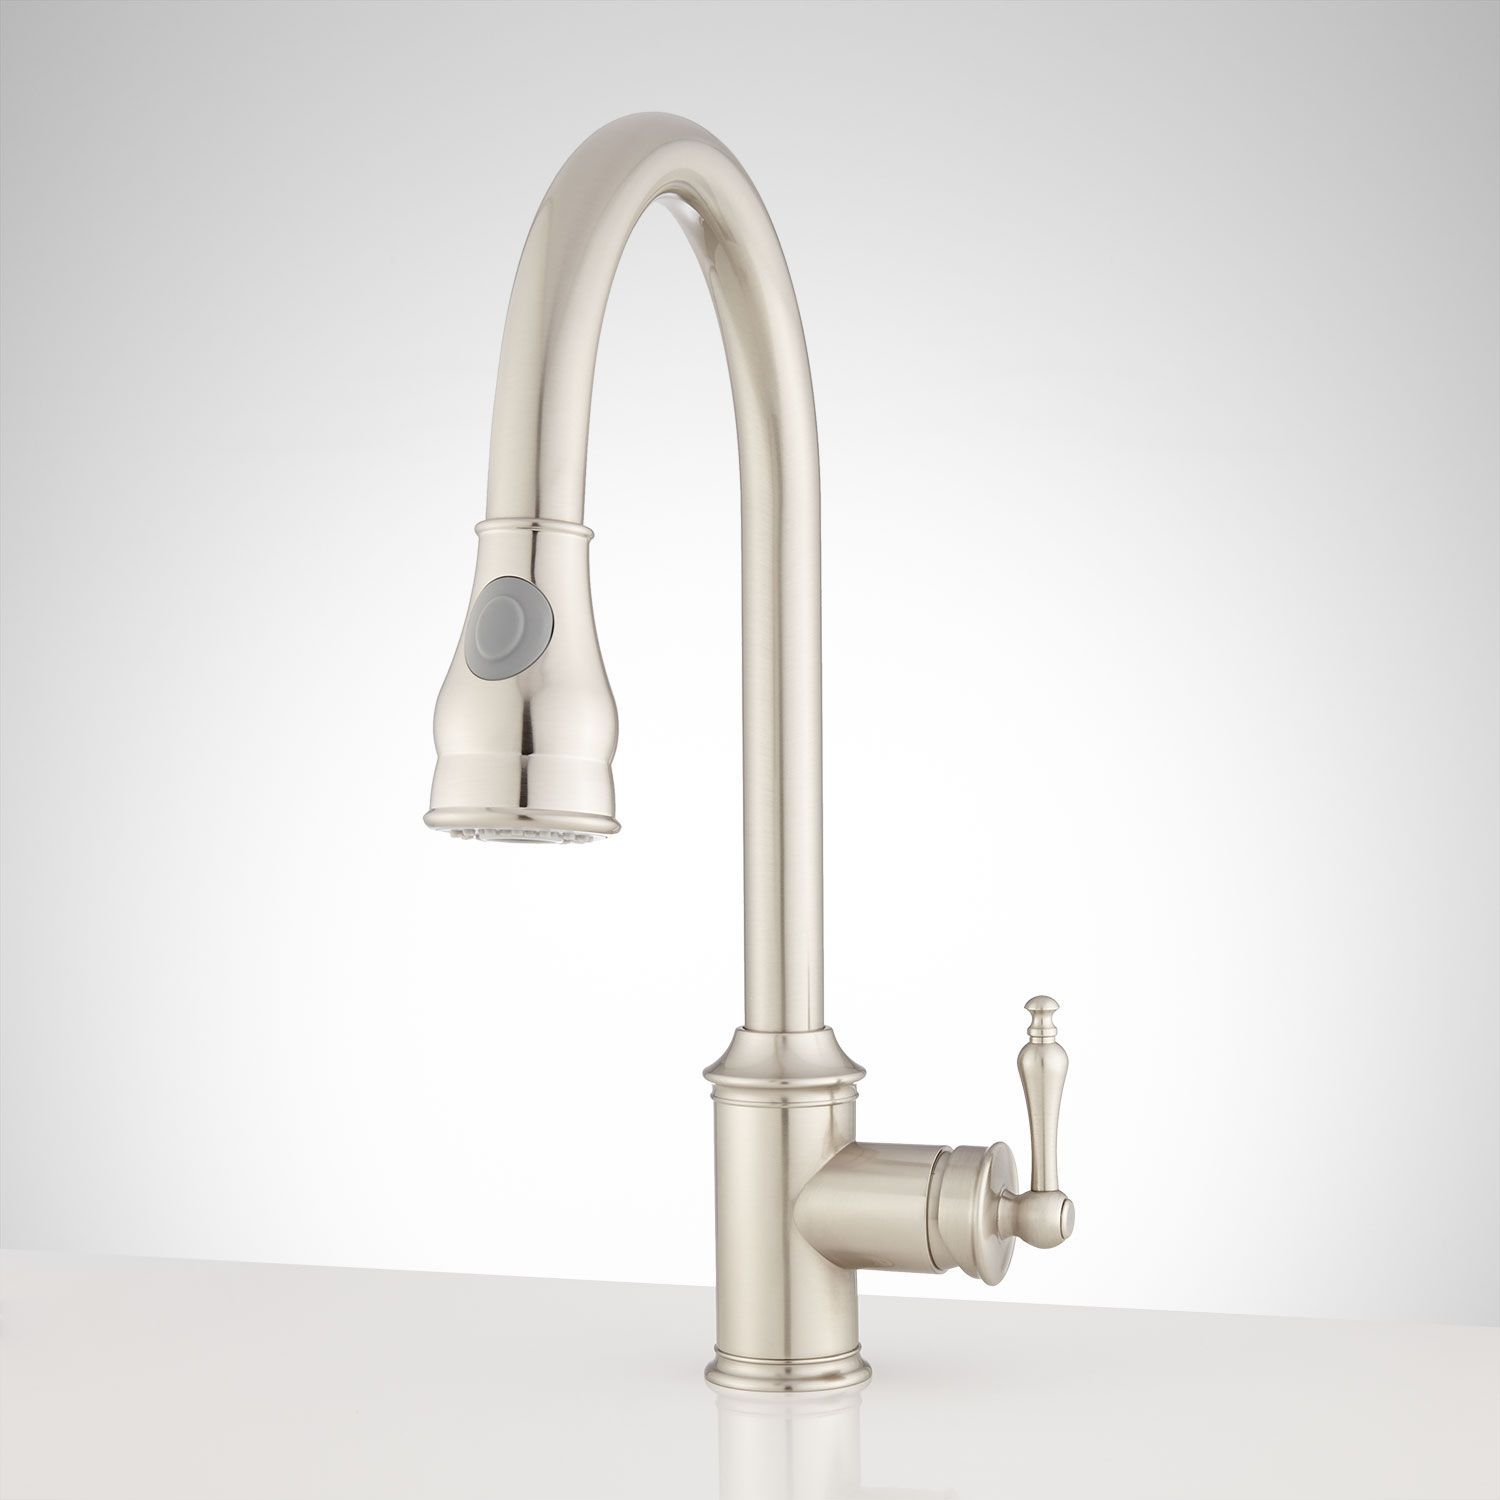 Trego Single-Hole Pull-Down Kitchen Faucet | Kitchen faucets, Faucet ...